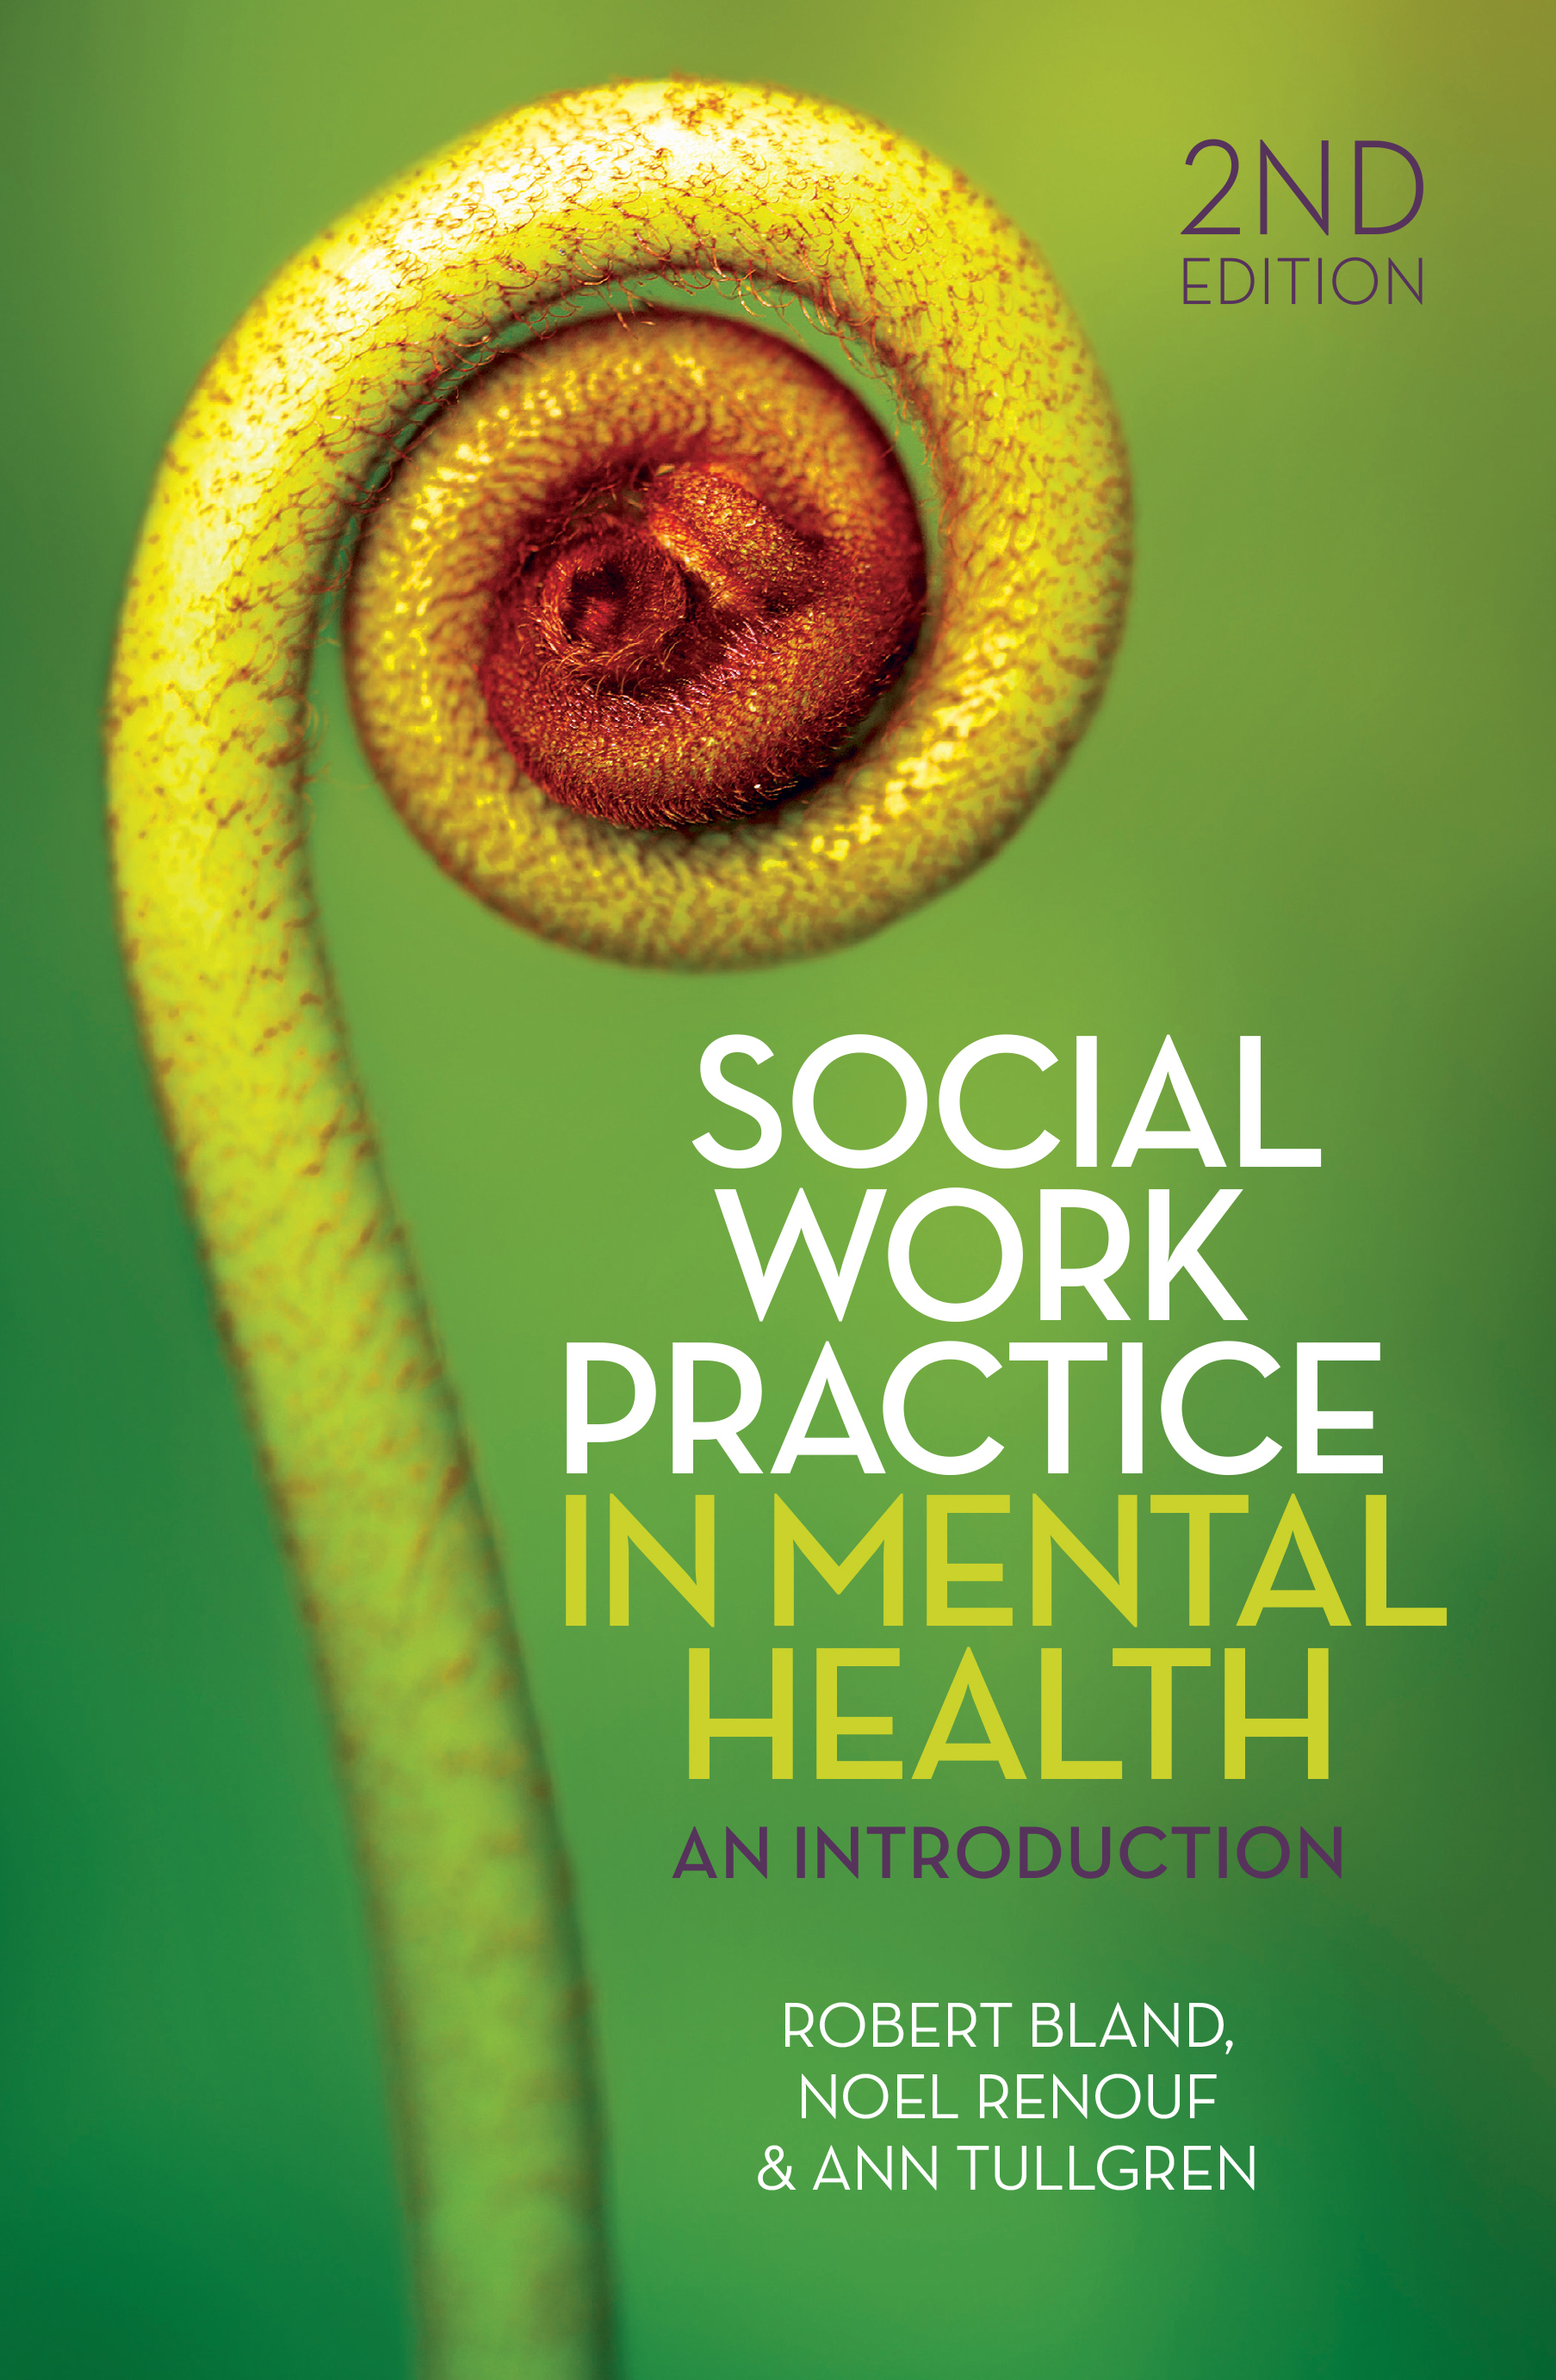 mental health social work Putting theory into practice: the heart of mental health field work july 24, 2012 by msw@usc staff after two years of working at a community mental health agency, it was time to sharpen my skills and earn a master of social work degree.